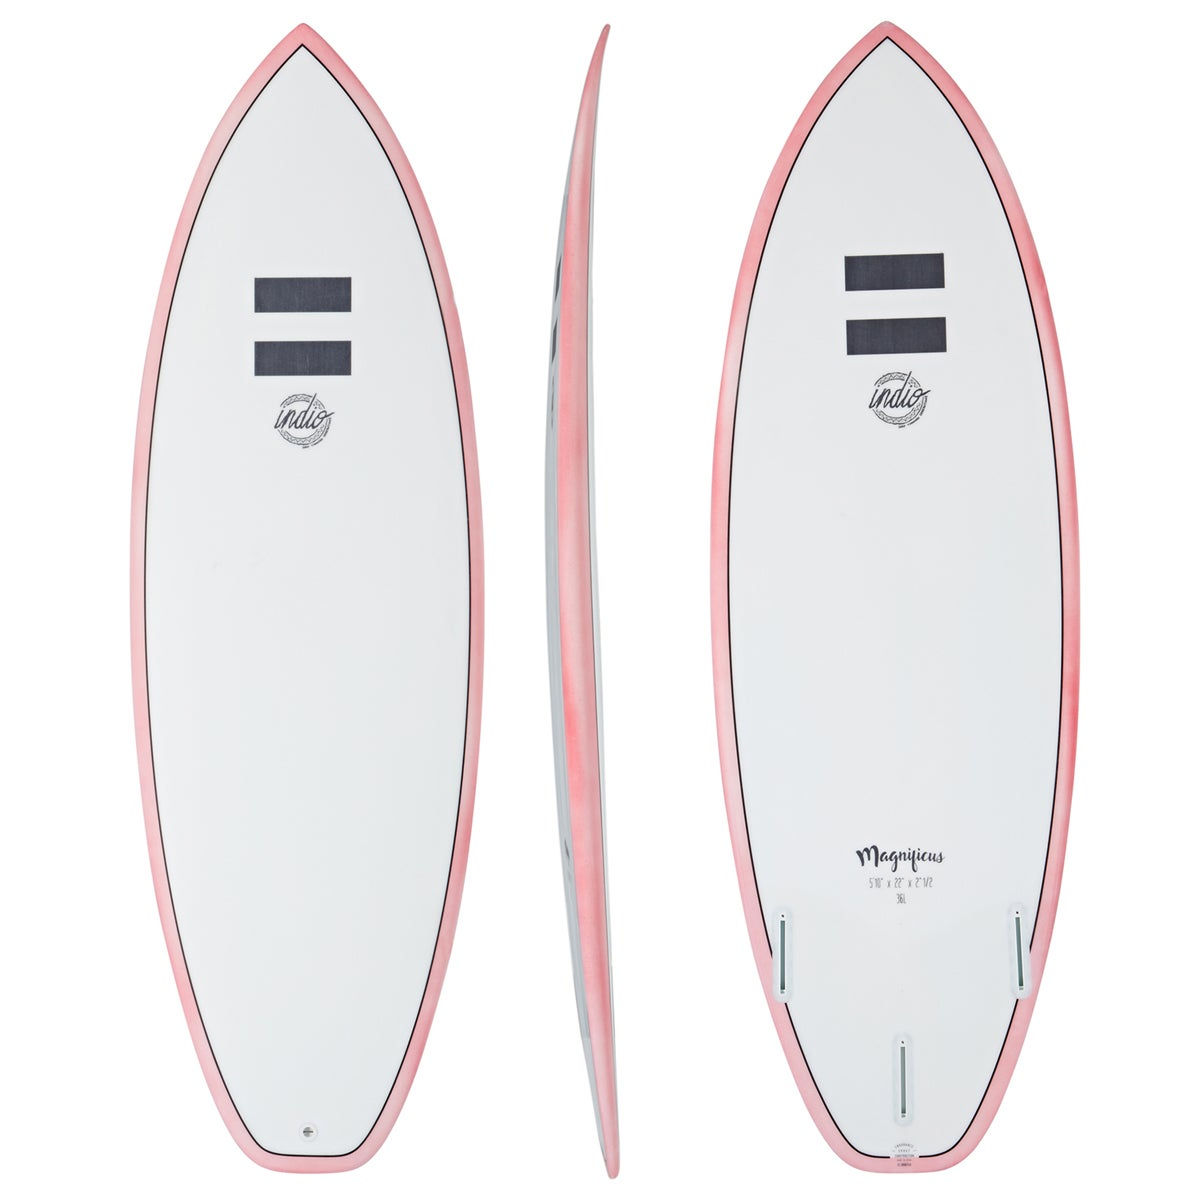 Indio Endurance Magnificus Surfboard - Pinline Red